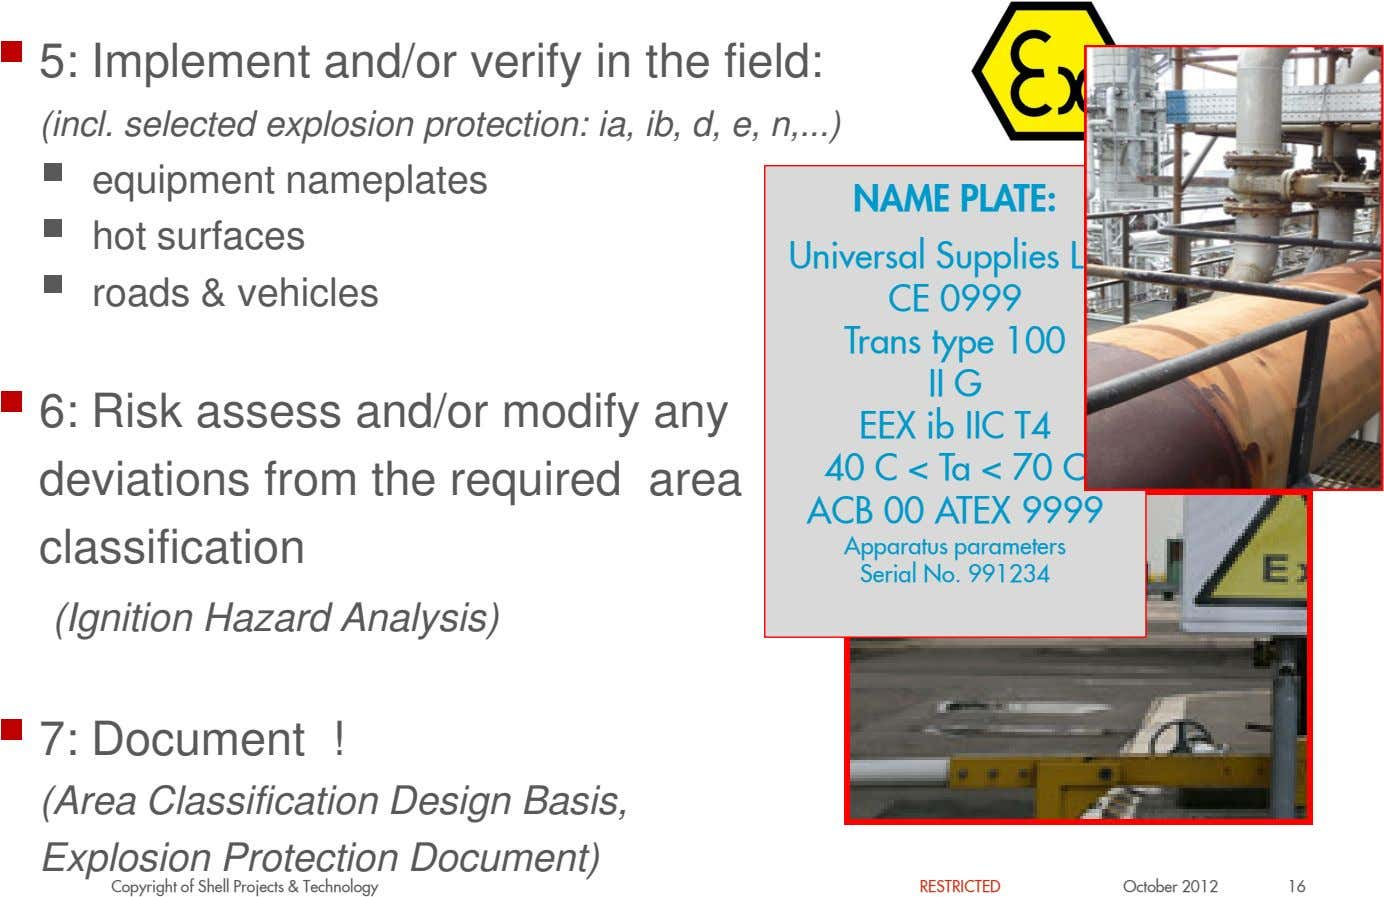 5: Implement and/or verify in the field: (incl. selected explosion protection: ia, ib, d, e,